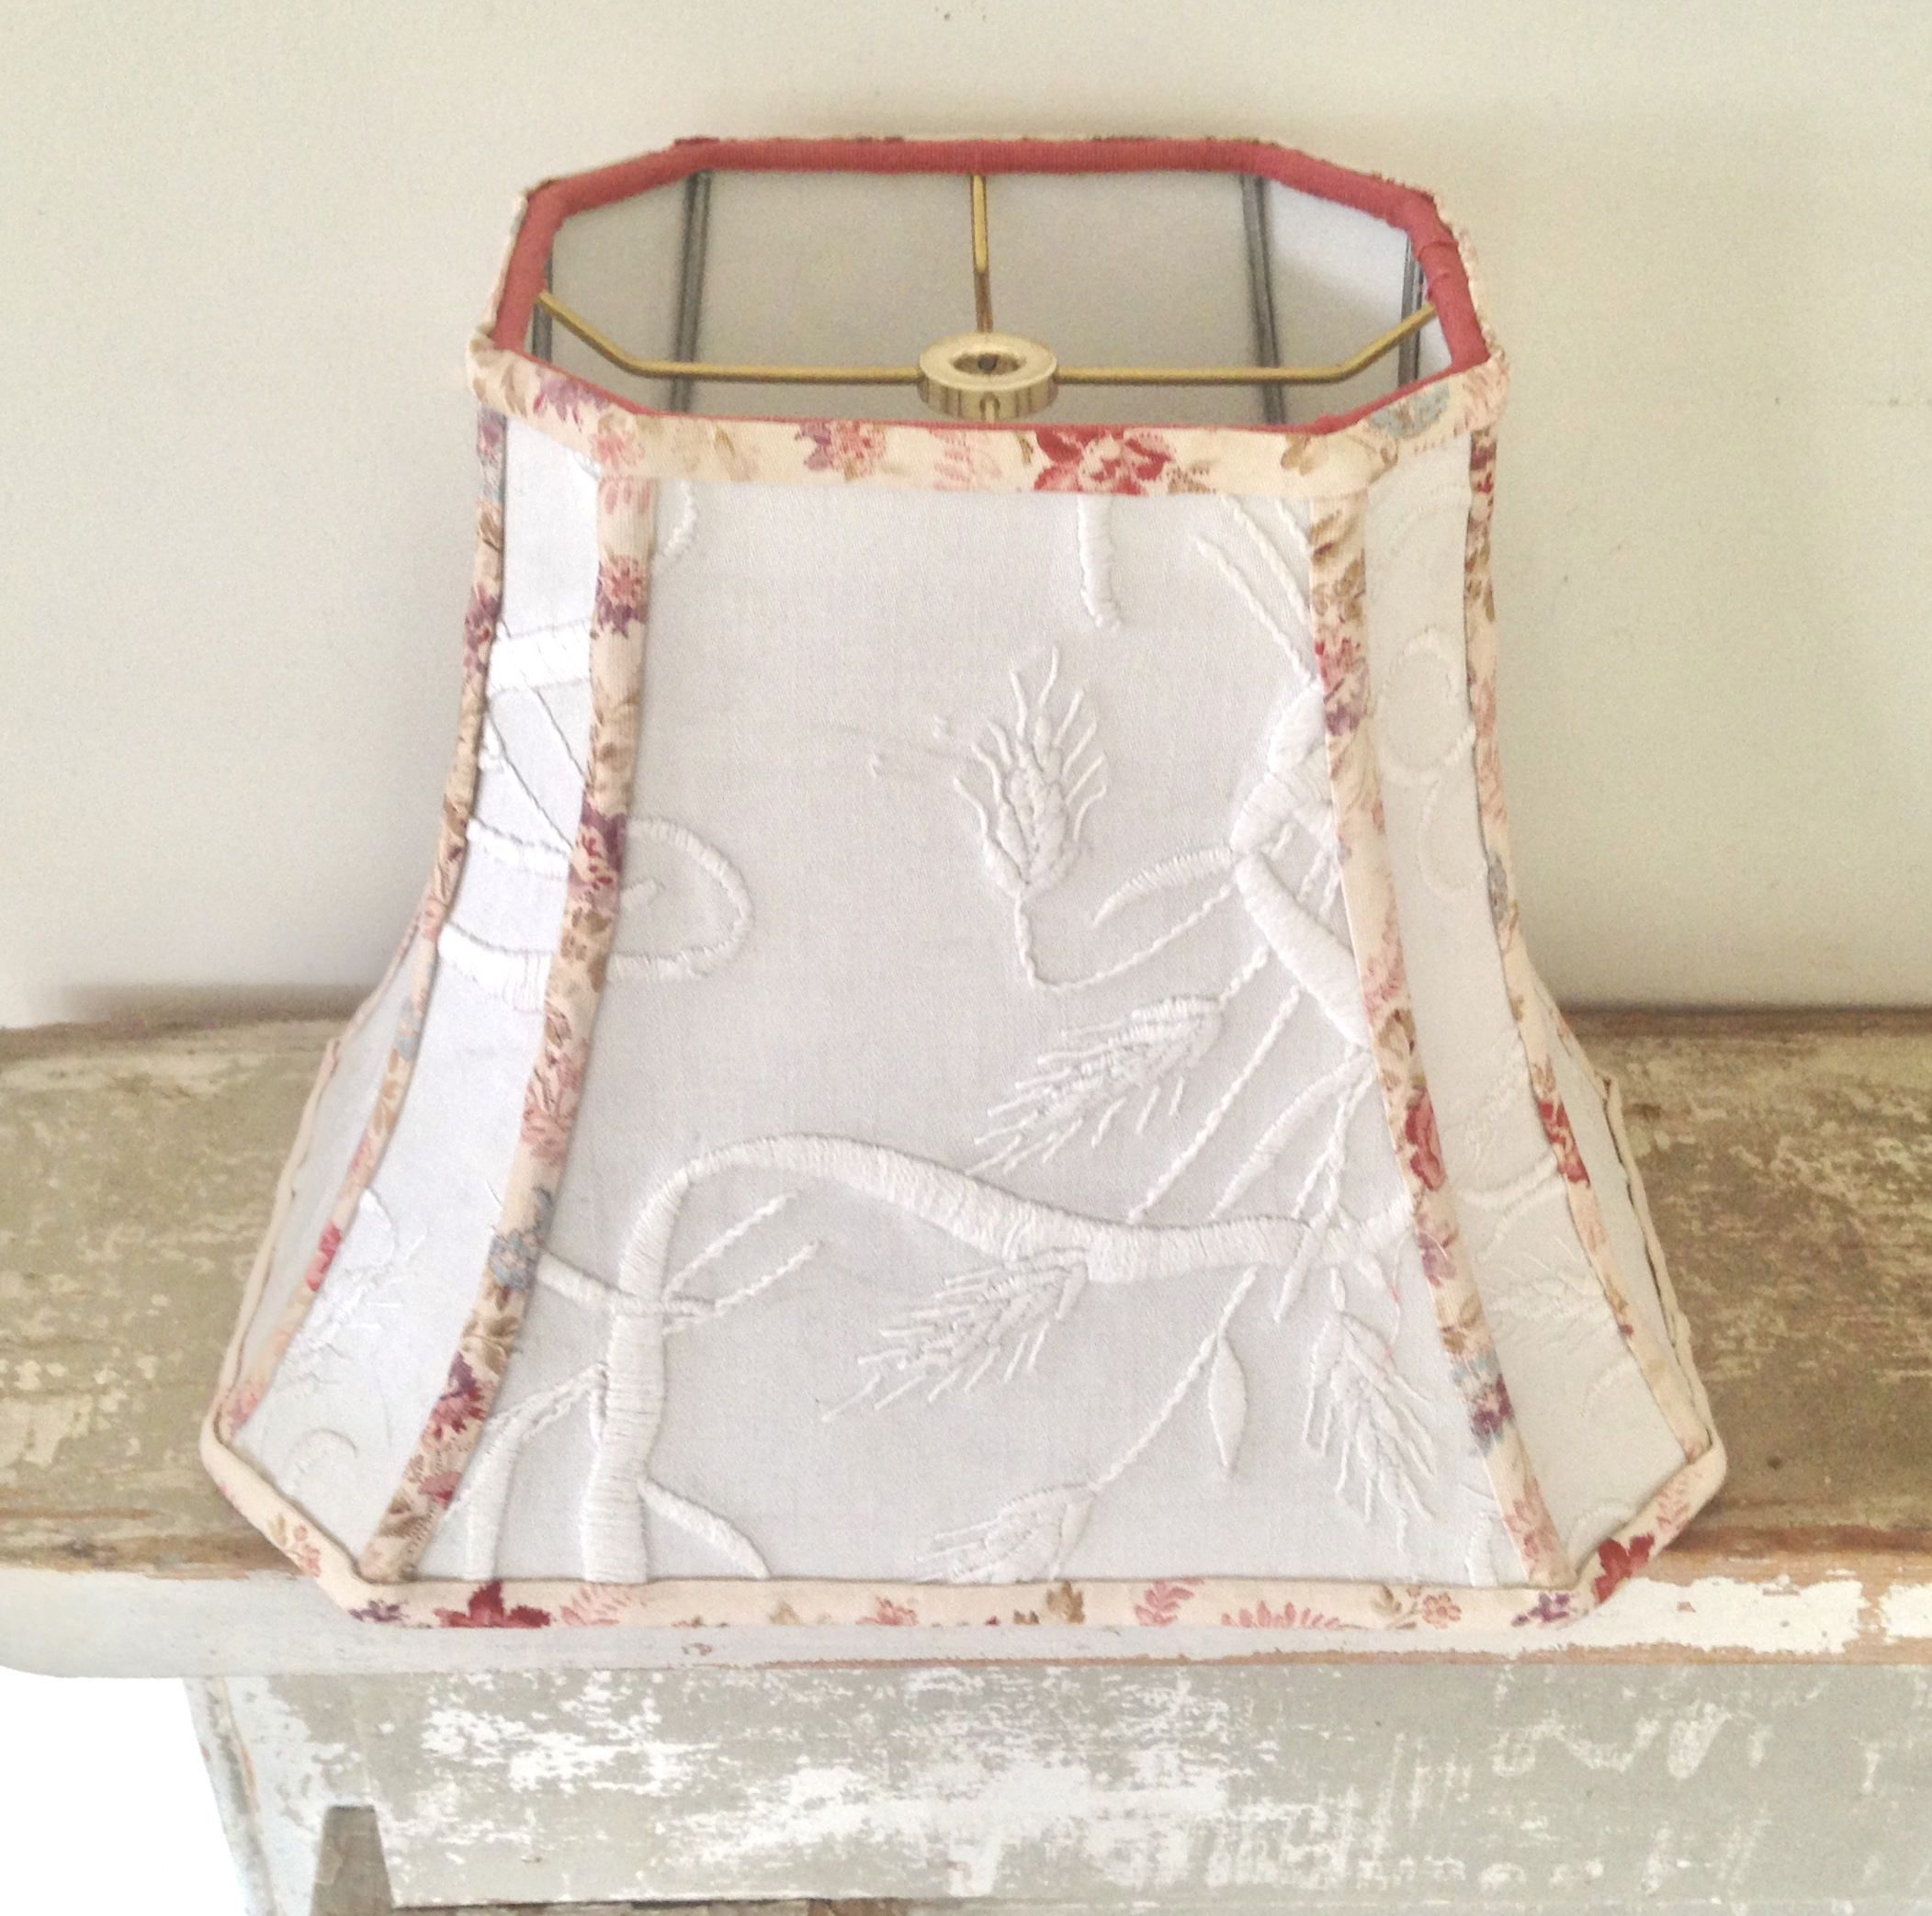 Wheat Embroidery Lampshade Off White Rectangle Lamp Shade 7 T X 12 B X 9 5 High Vintage Fabric Lampshad Rectangle Lamp Shade Fabric Lampshade Vintage Fabric